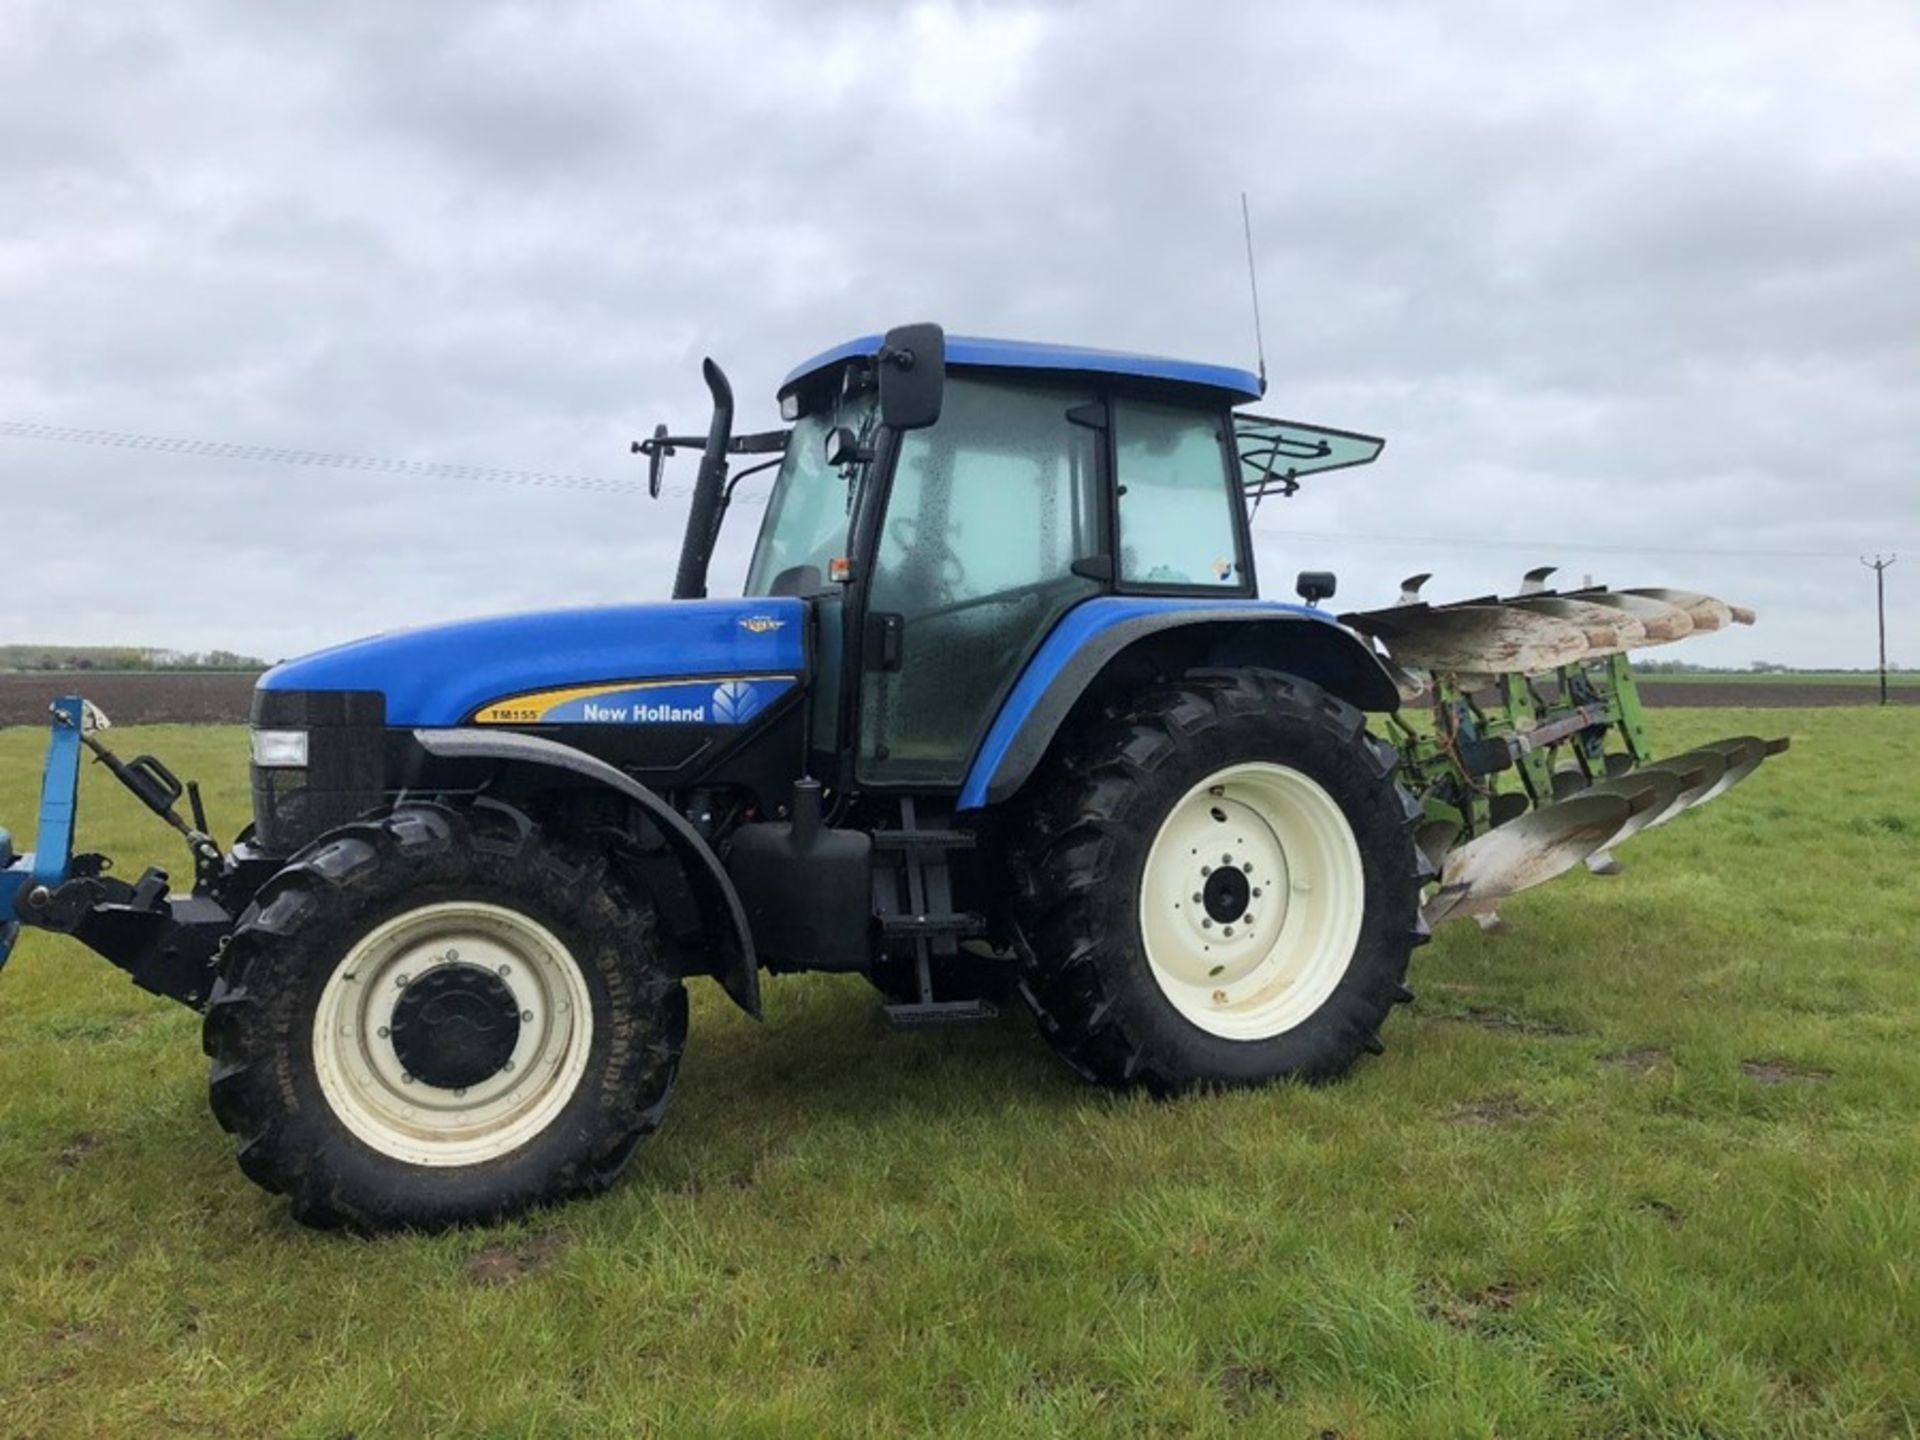 (07) New Holland TM 155 - Image 8 of 10